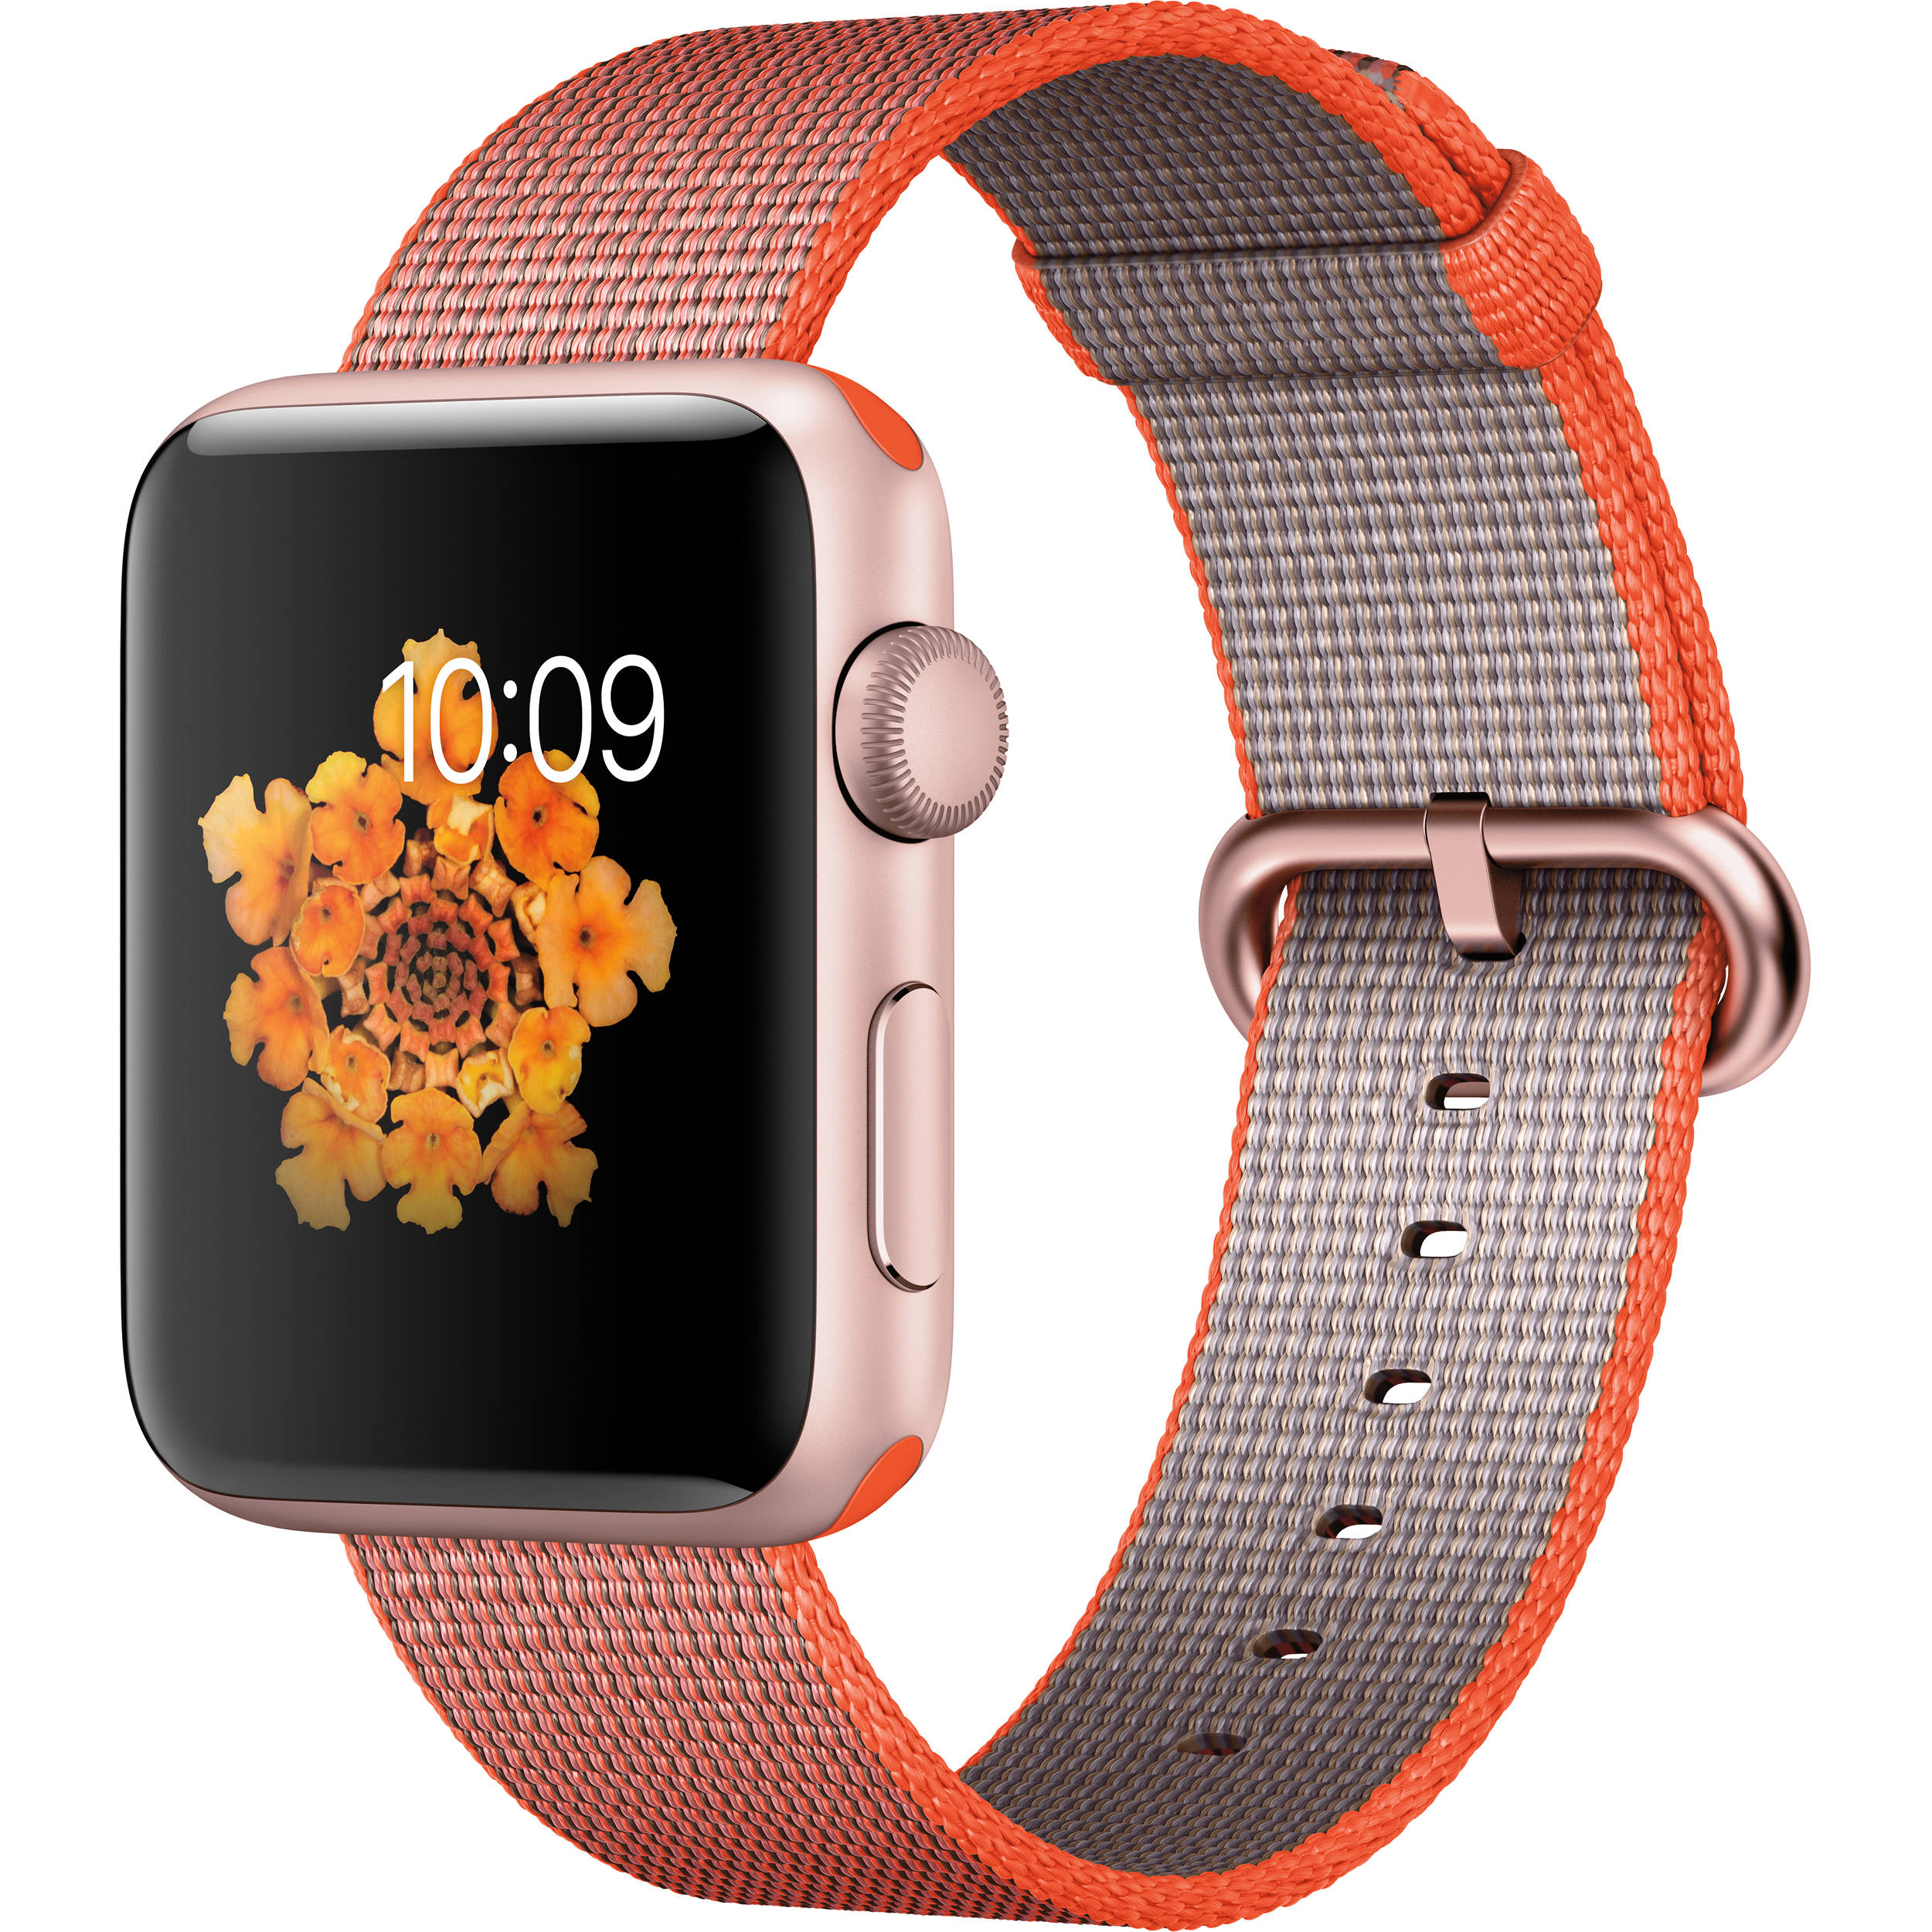 reputable site 05317 51807 Apple Watch Series 2 42mm Smartwatch (Rose Gold Aluminum Case, Sport  Orange/Anthracite Woven Nylon Band)